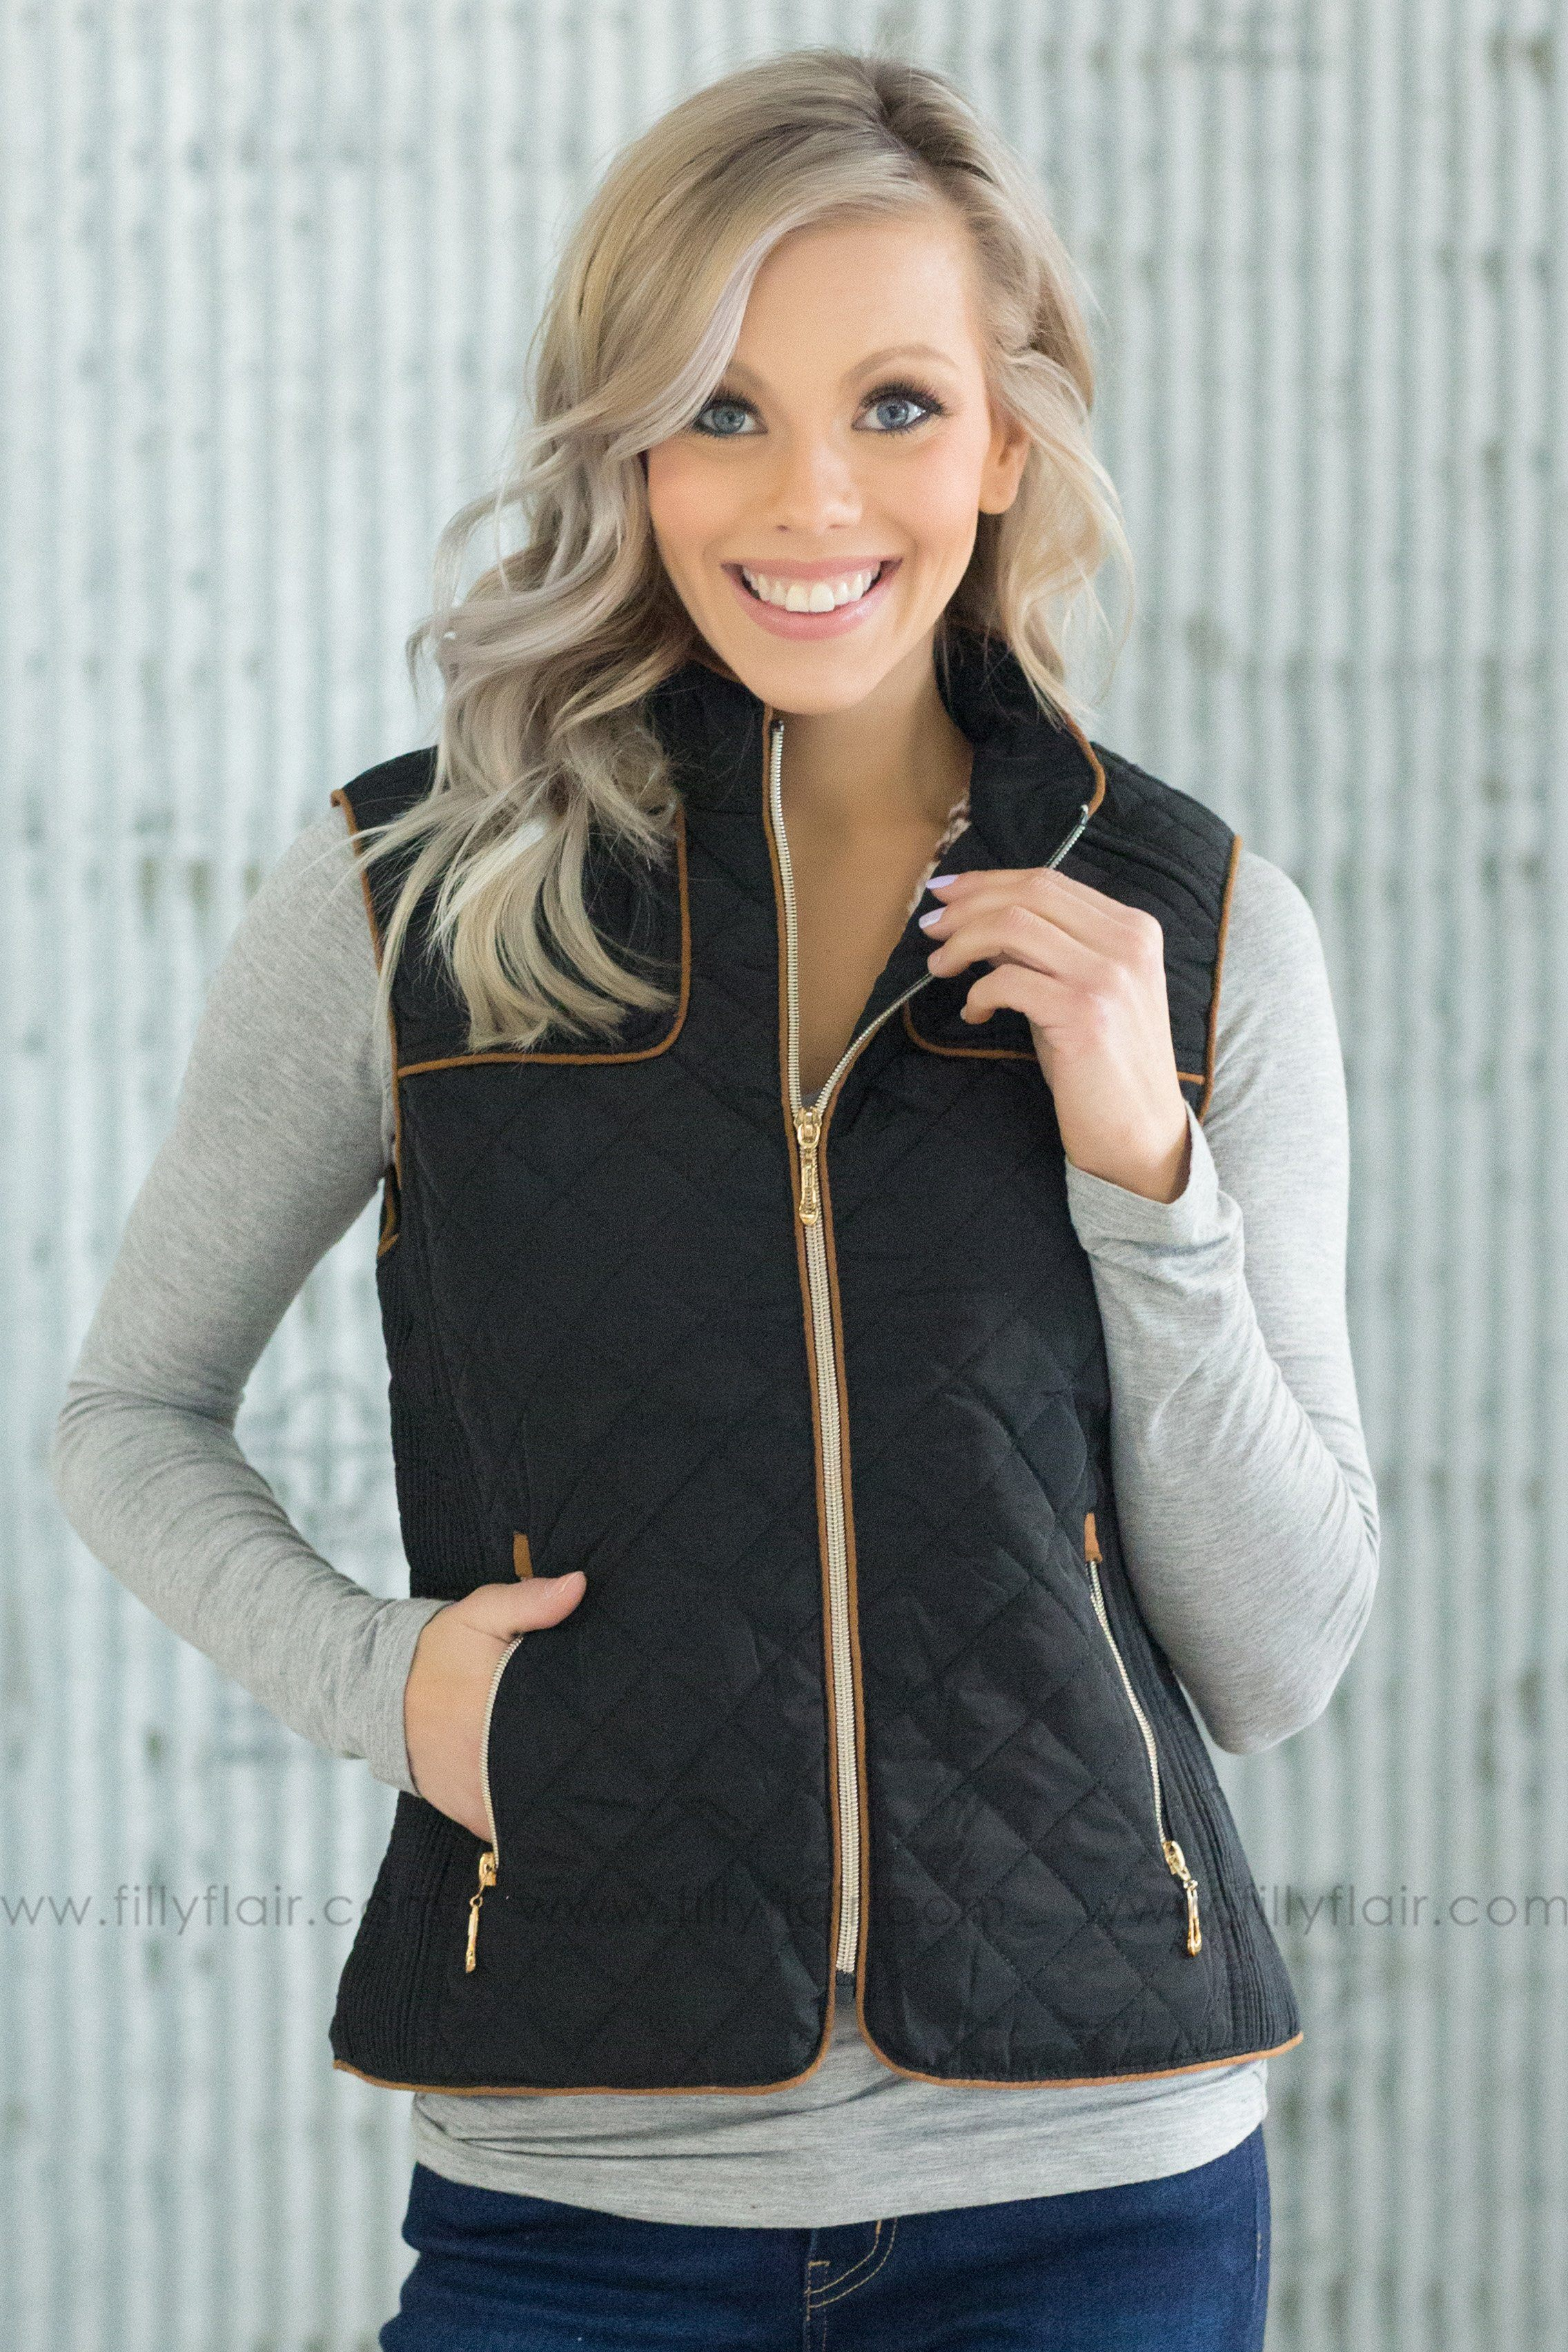 A New Beginning Puffy Zip Up Vest in Black - Filly Flair